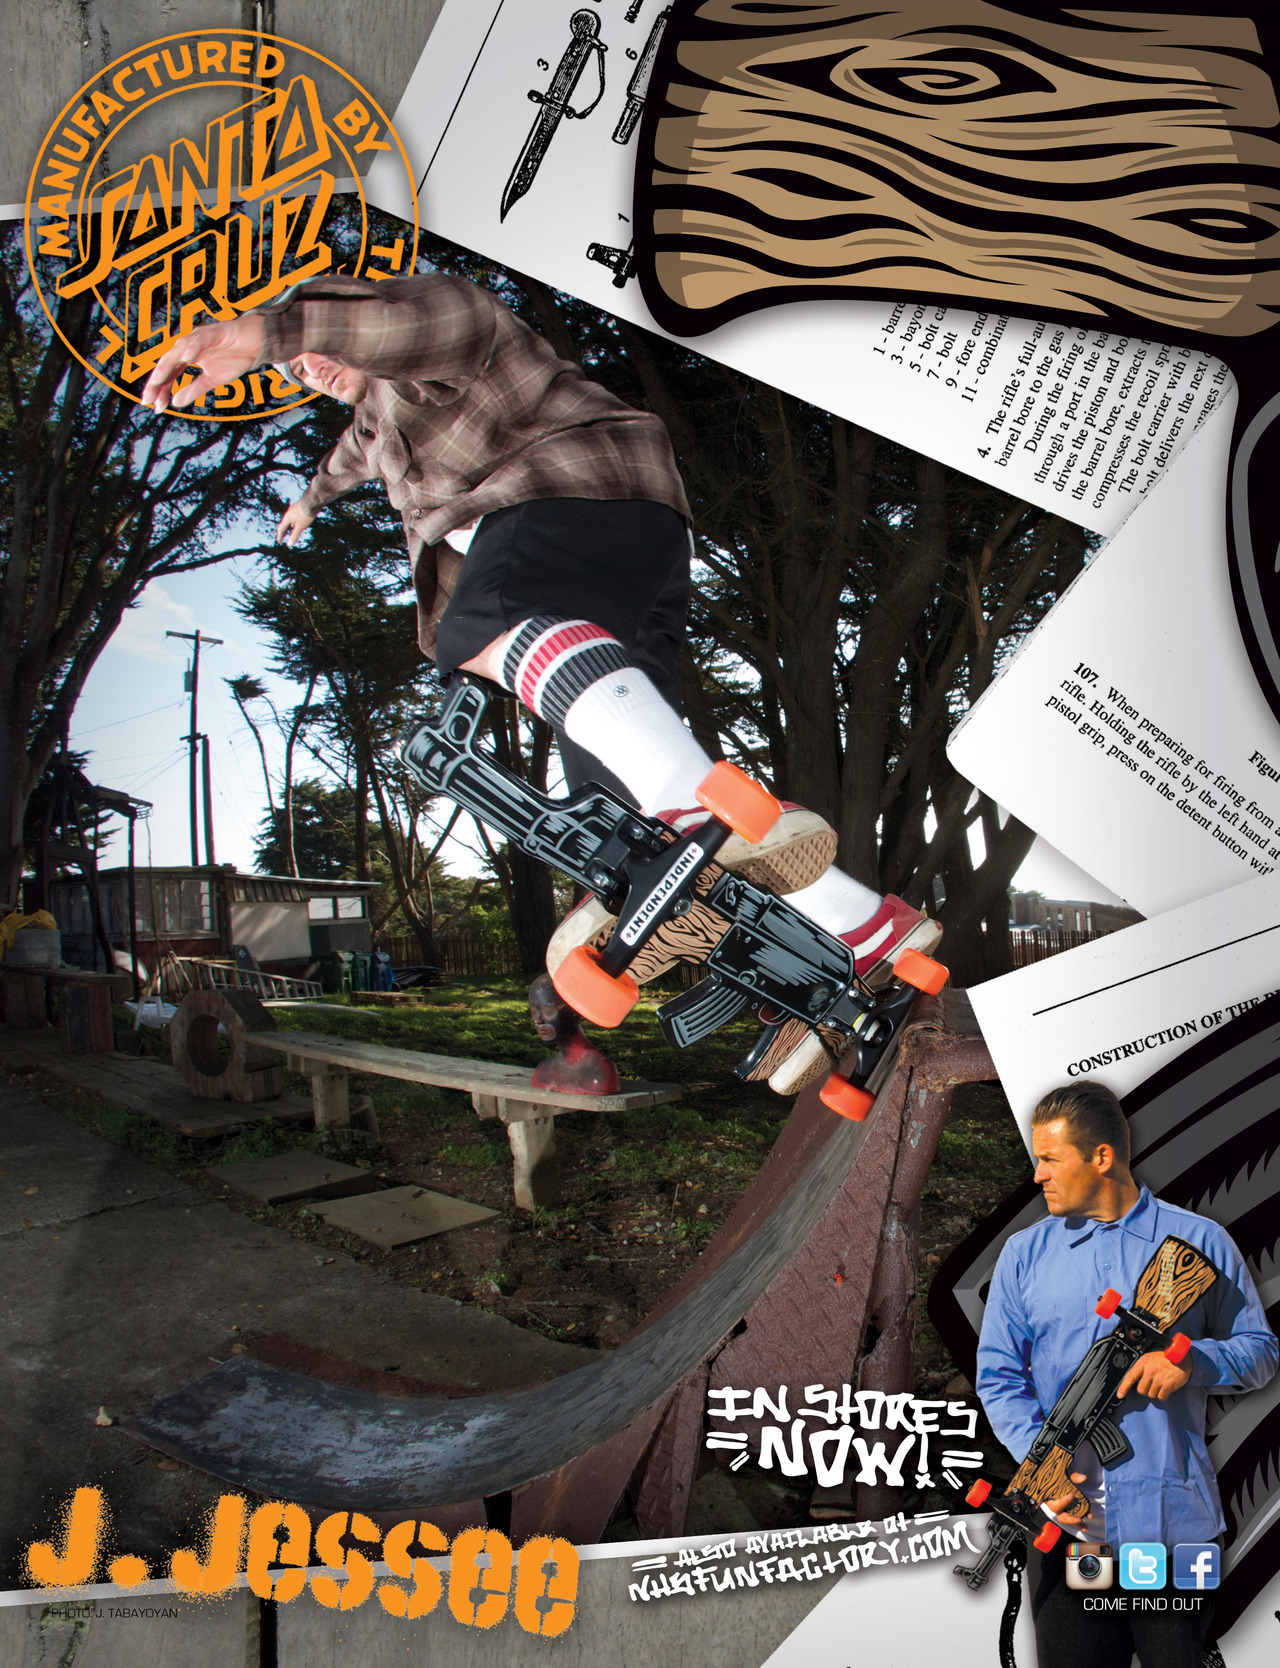 SANTA CRUZ SKATEBOARDS - JASON JESSE